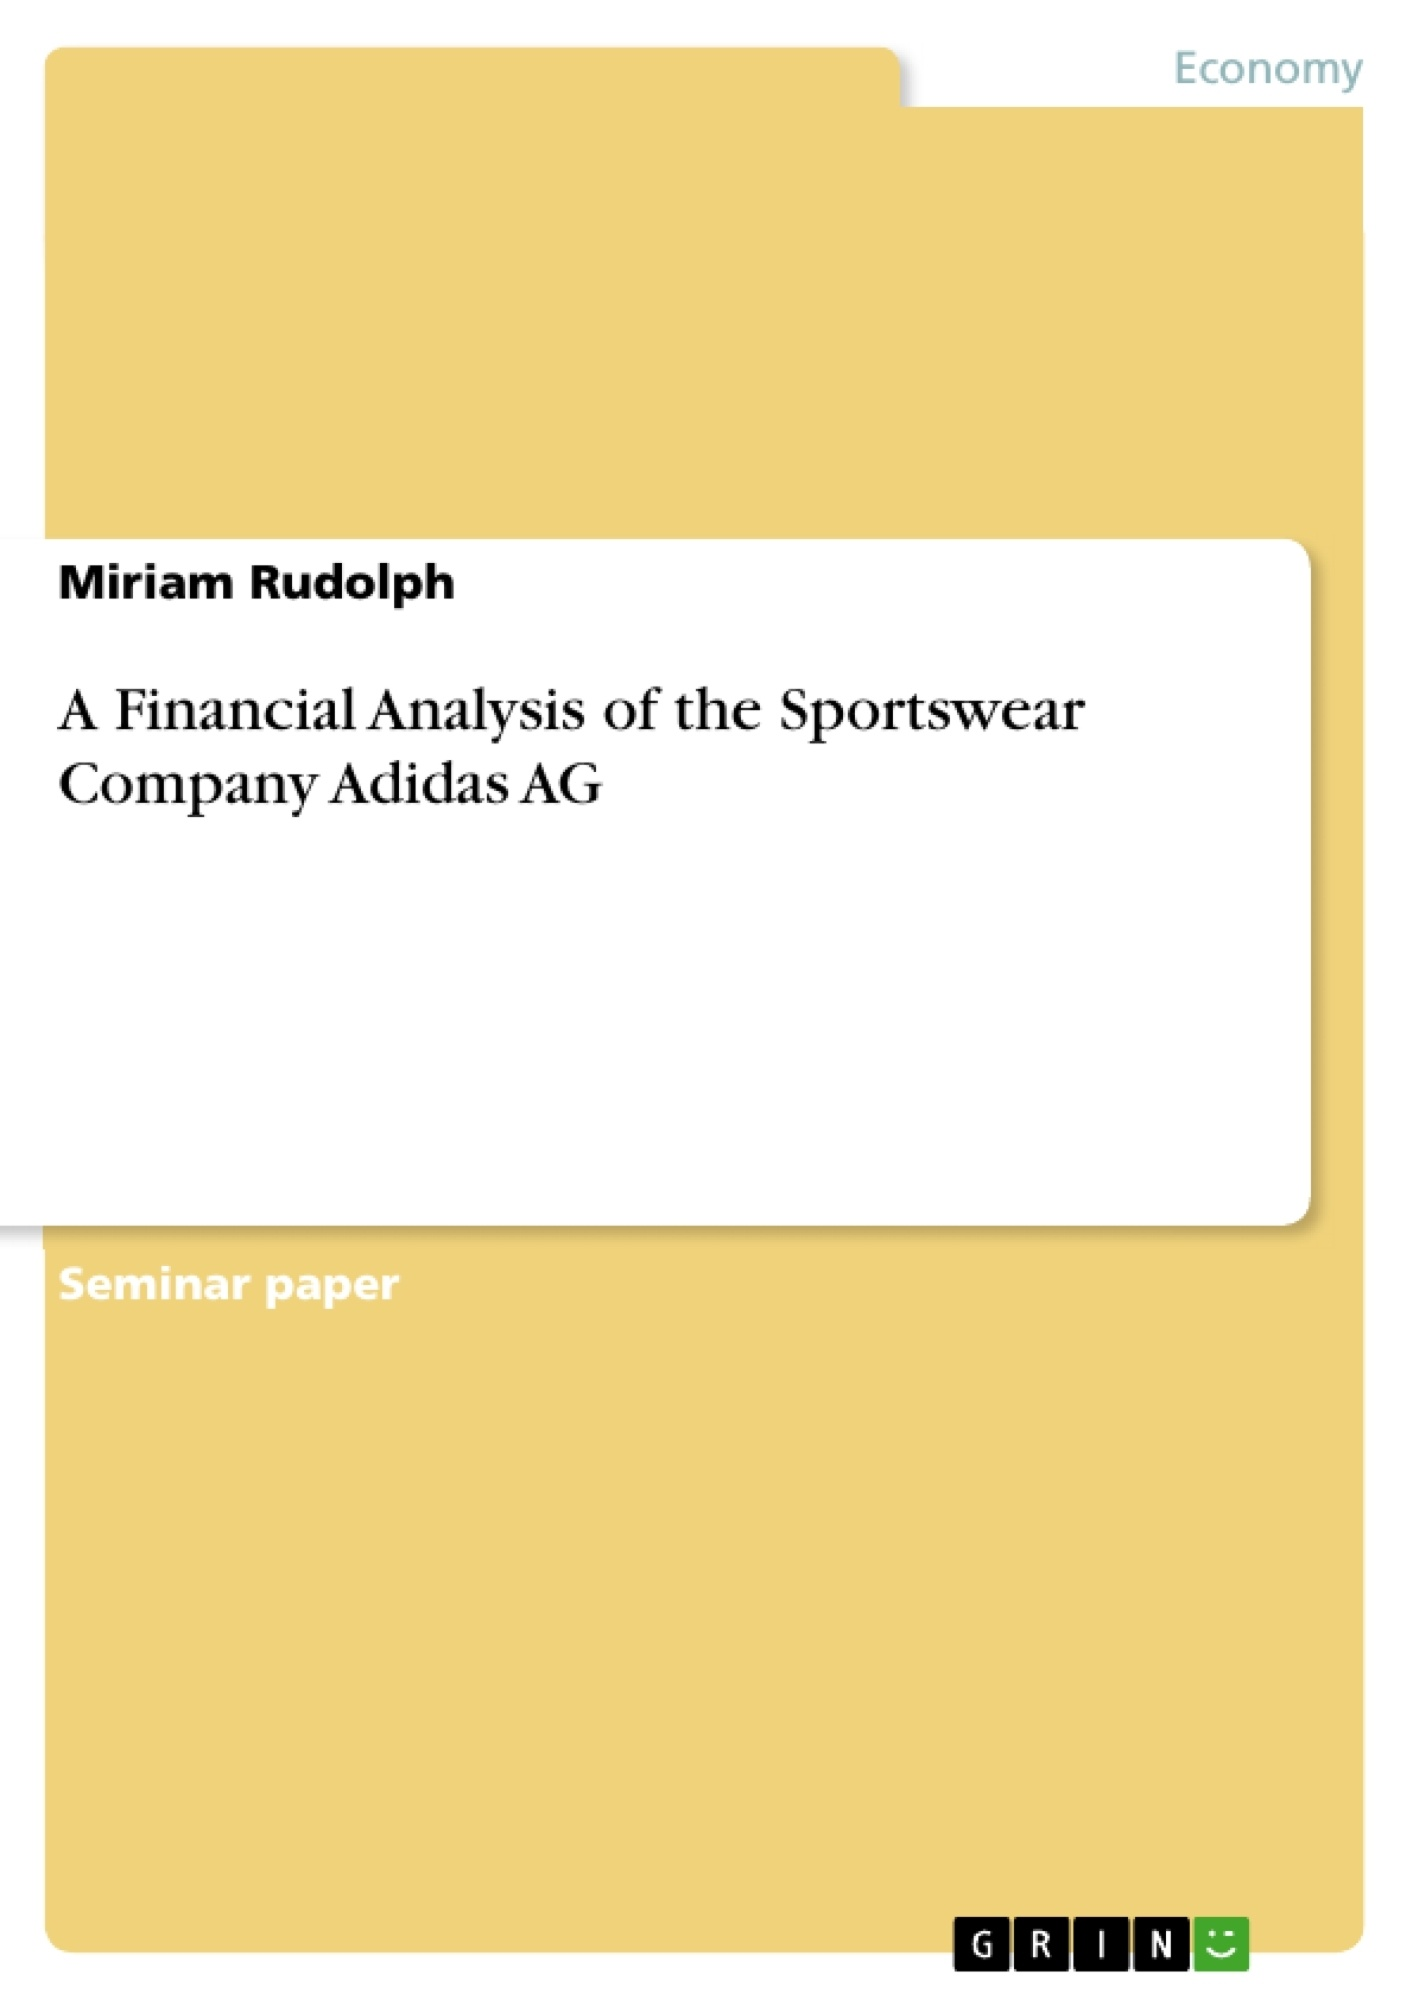 Title: A Financial Analysis of the Sportswear Company Adidas AG